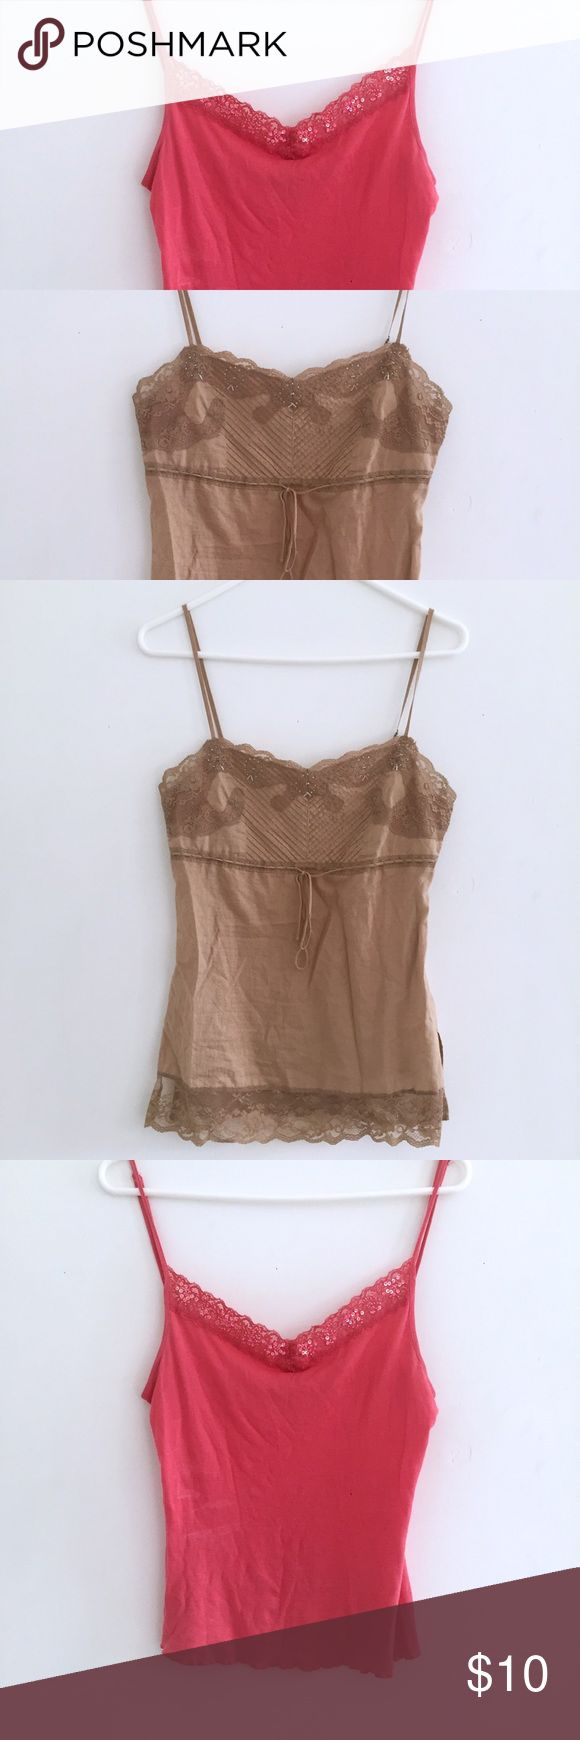 2 Lace Cami Bundle - Gold and Coral Get BOTH these adorable lacy camis! Both EUC. The gold cami says XS but definitely fits more like a S. The coral cami has a tinnnnny hole that I have pictured but is hardly noticeable Express Tops Camisoles